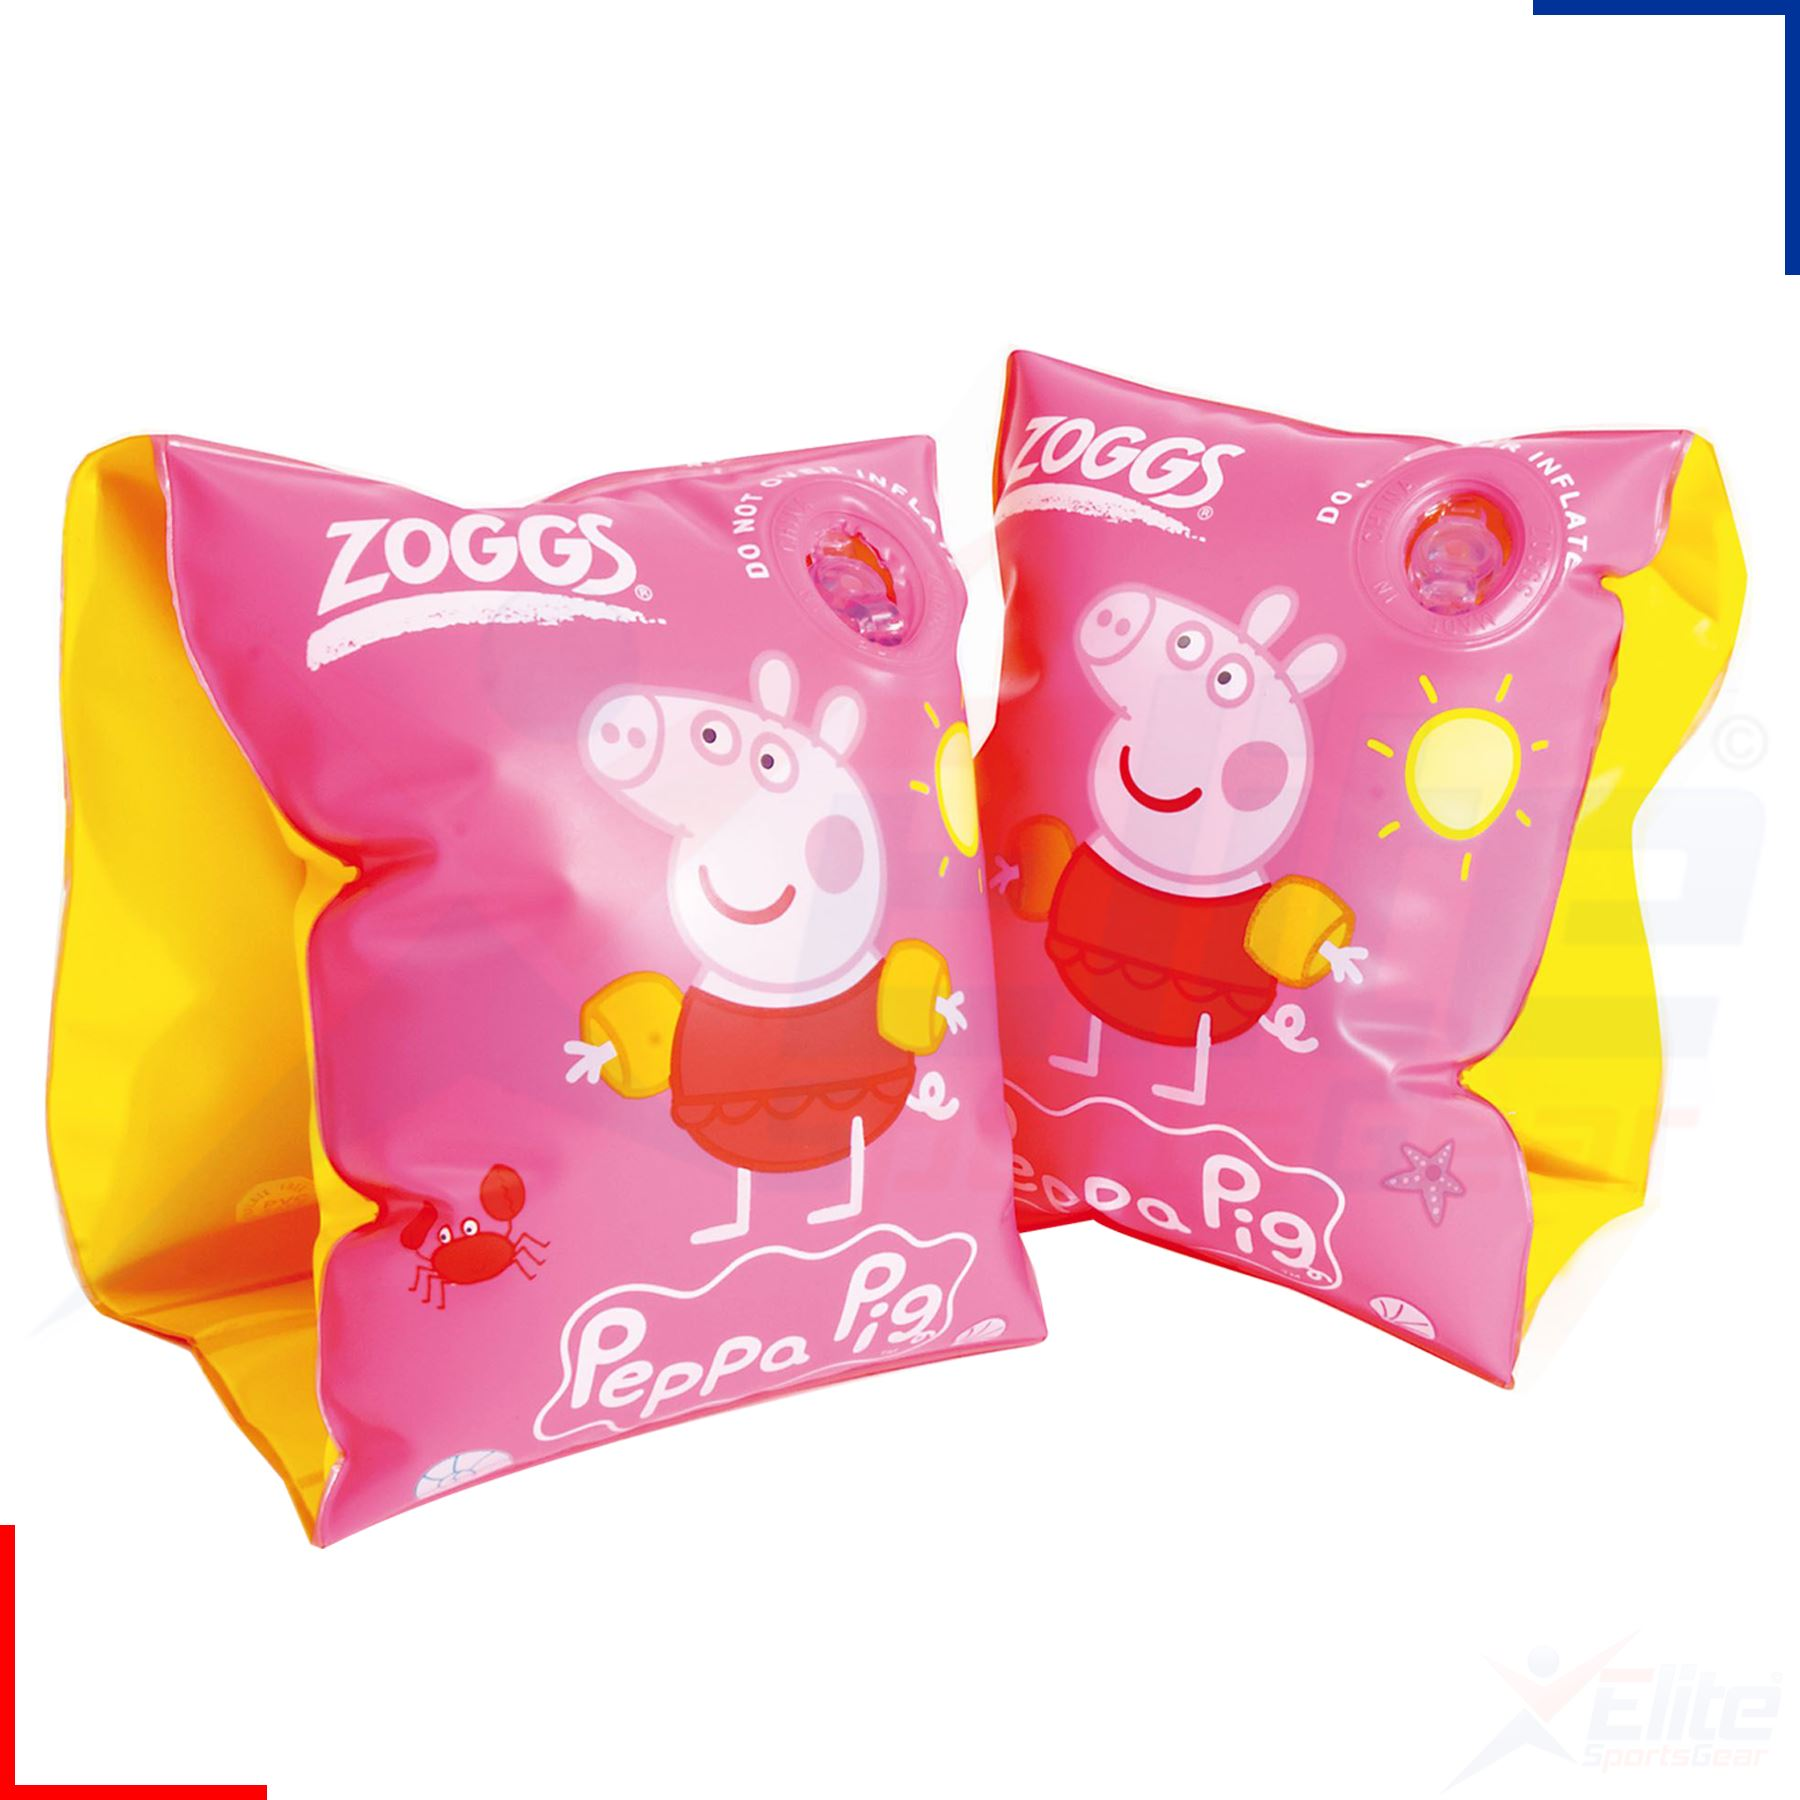 Zoggs Peppa Pig George Kids V Arm Bands Swimming Pool Inflatable Floats Aids Ebay